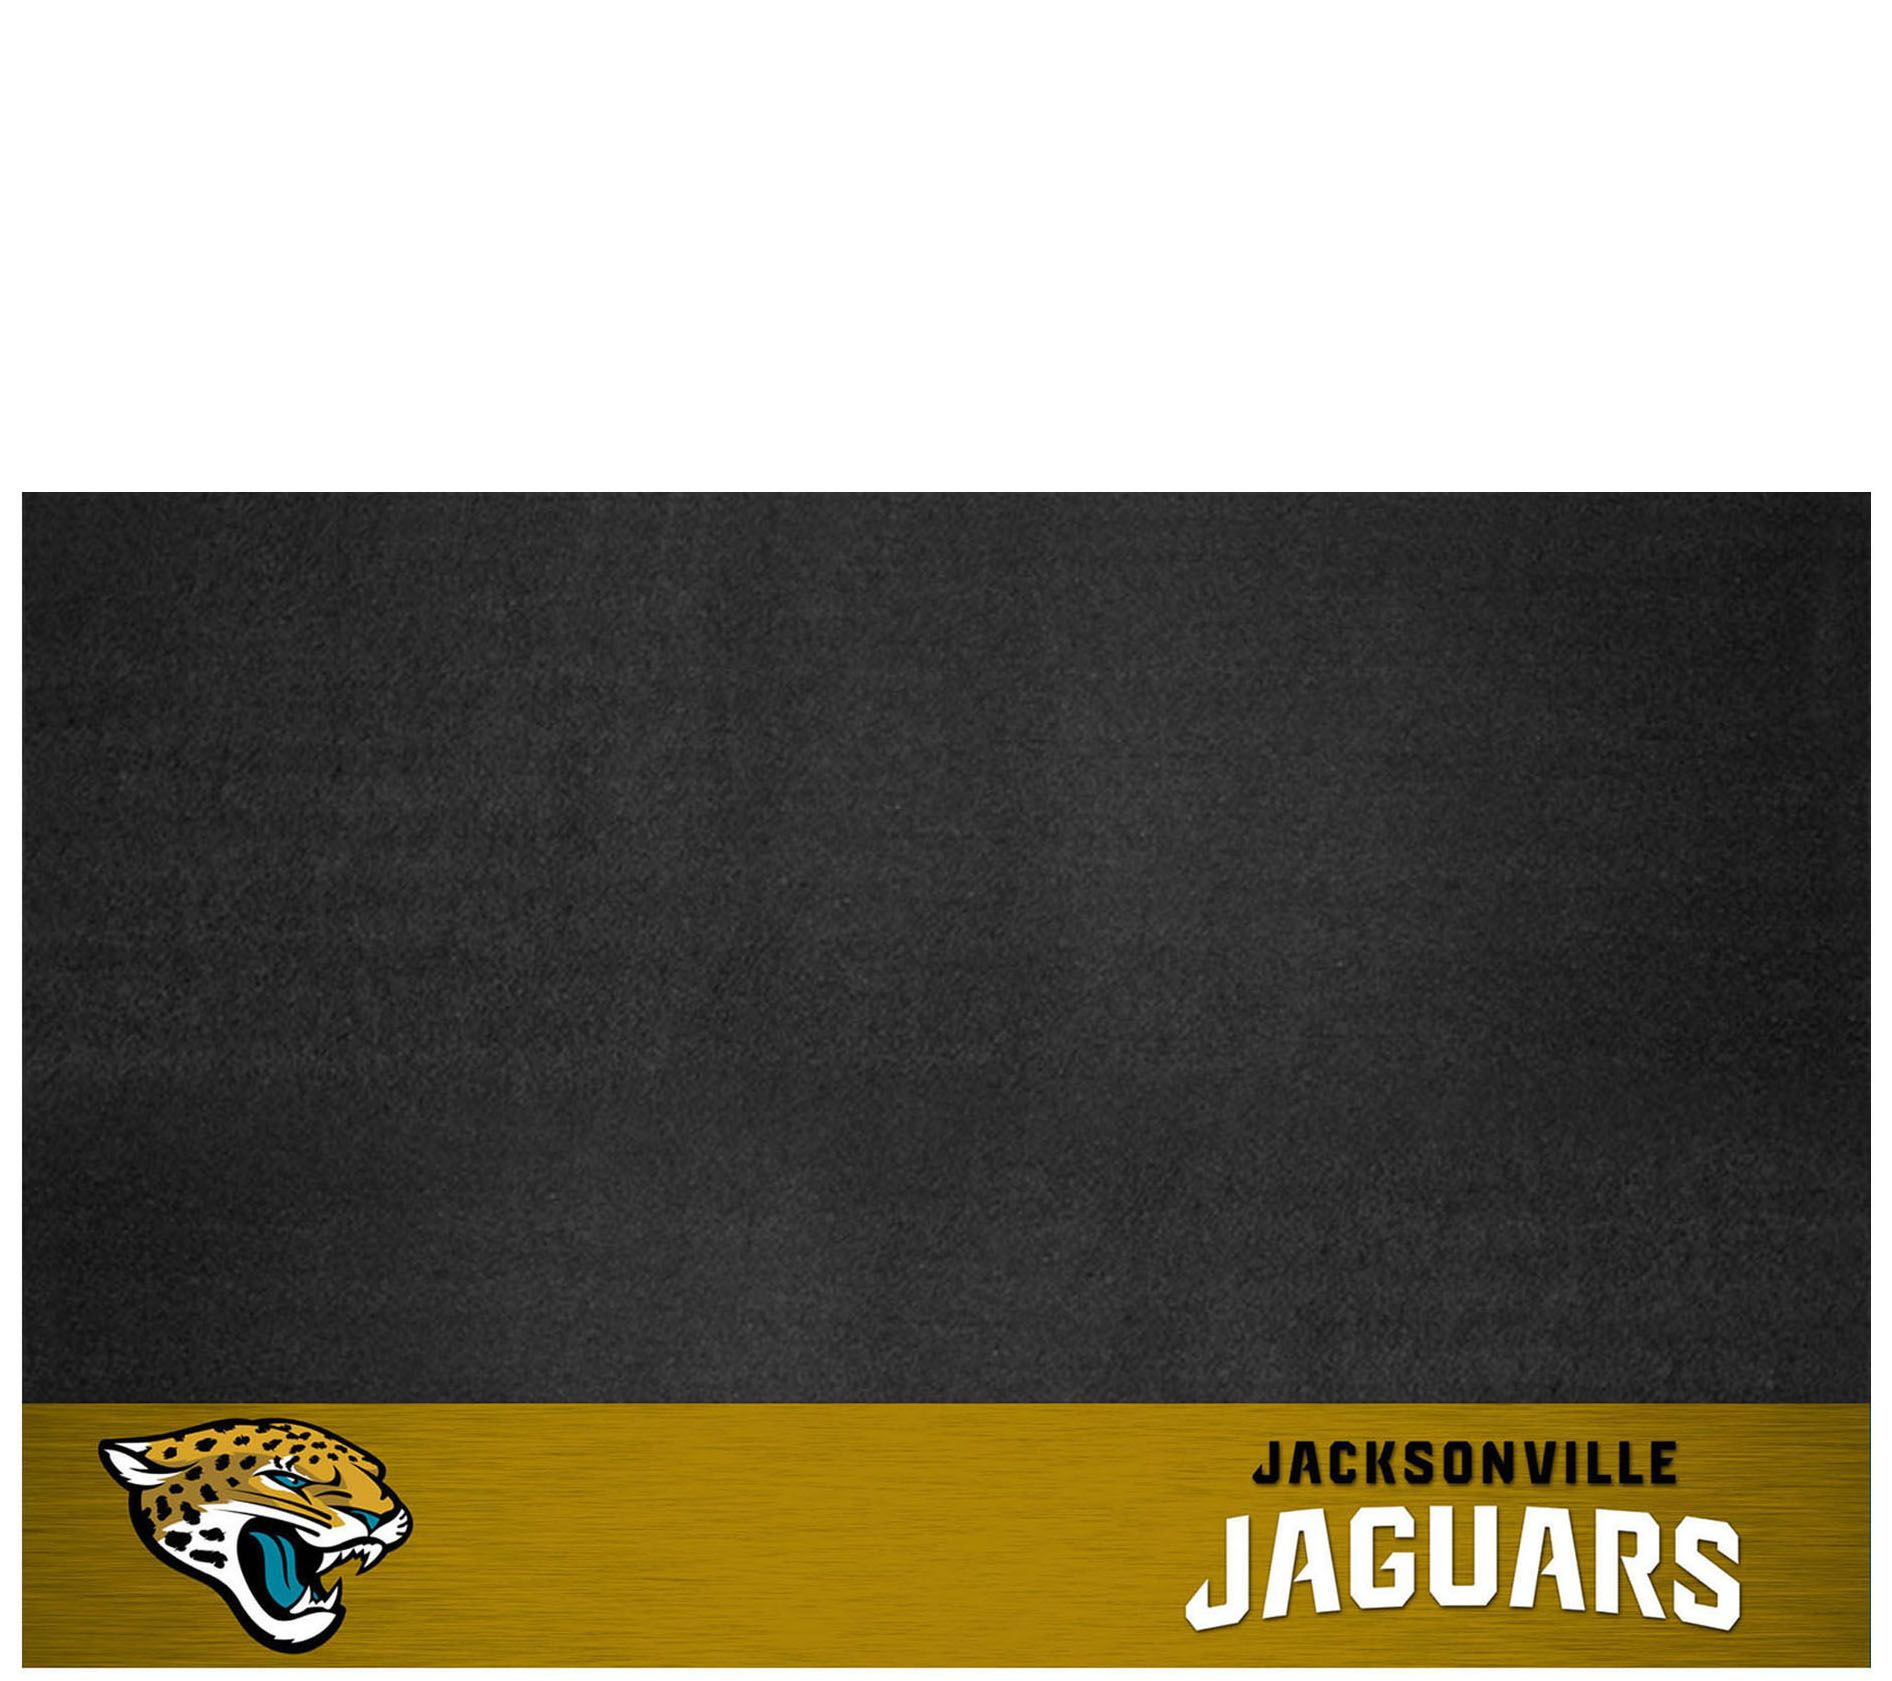 Vinyl grill mat with your favorite team logo